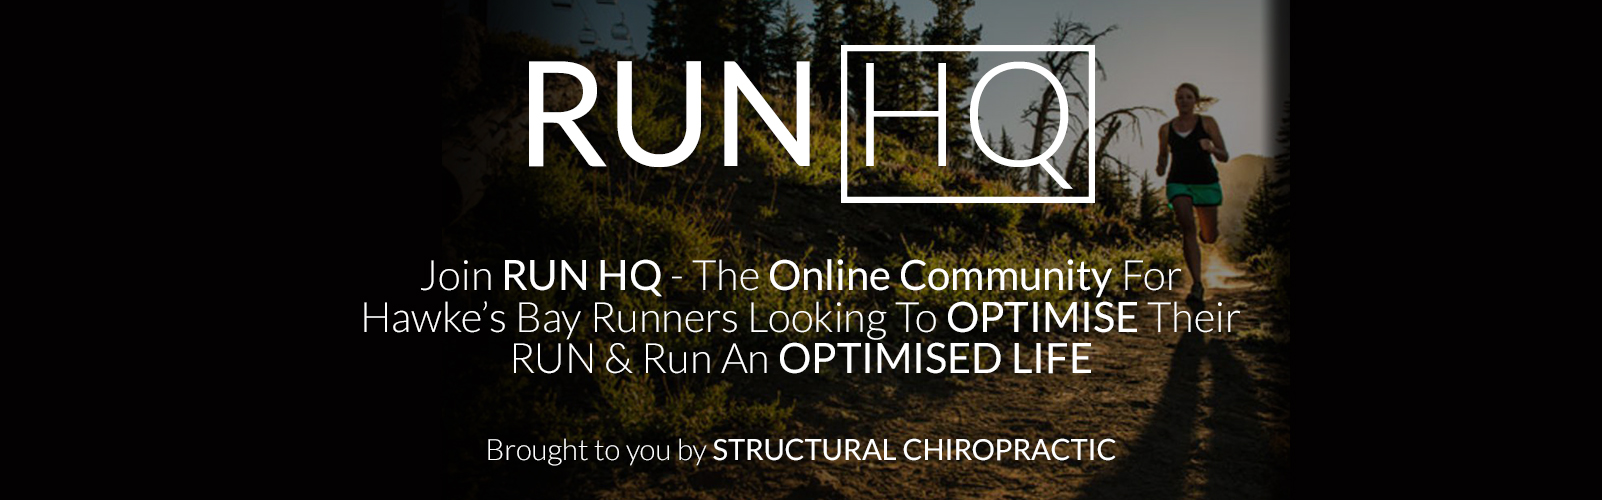 Join Run HQ - The Online Community For Hawke's Bay Runners